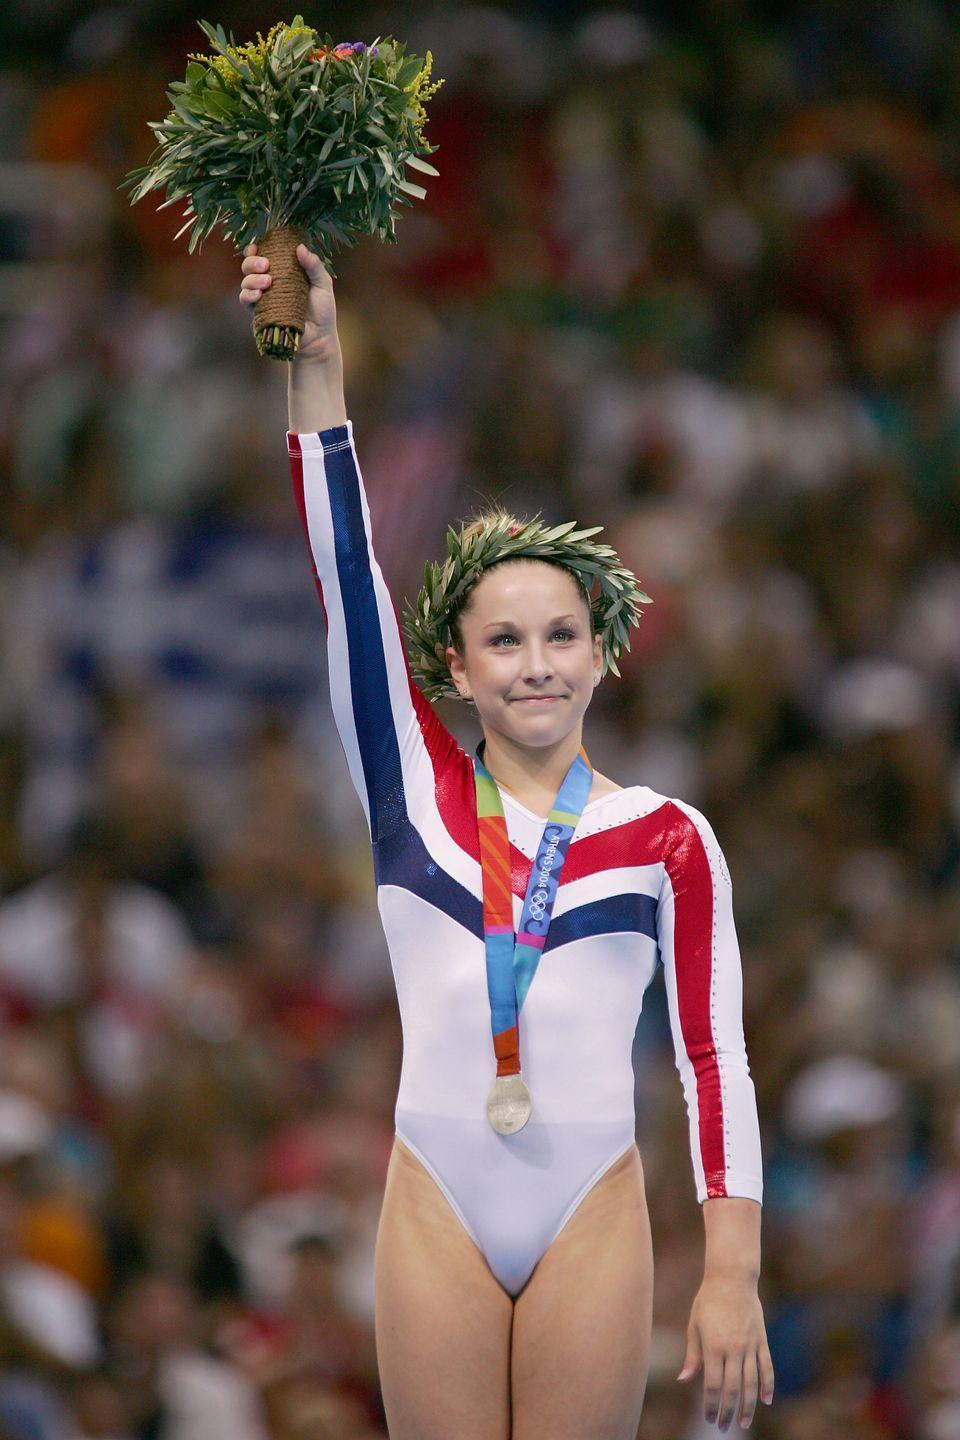 """<p>Carly Patterson competed in only one Olympics, however she made history in Athens in 2004. Patterson became the first American gymnast to <a href=""""https://olympics.com/en/athletes/carly-patterson"""" rel=""""nofollow noopener"""" target=""""_blank"""" data-ylk=""""slk:win the all-around individual award"""" class=""""link rapid-noclick-resp"""">win the all-around individual award</a> (at a non-boycotted event) in 2004 and took home one gold medal and two silver medals. </p>"""